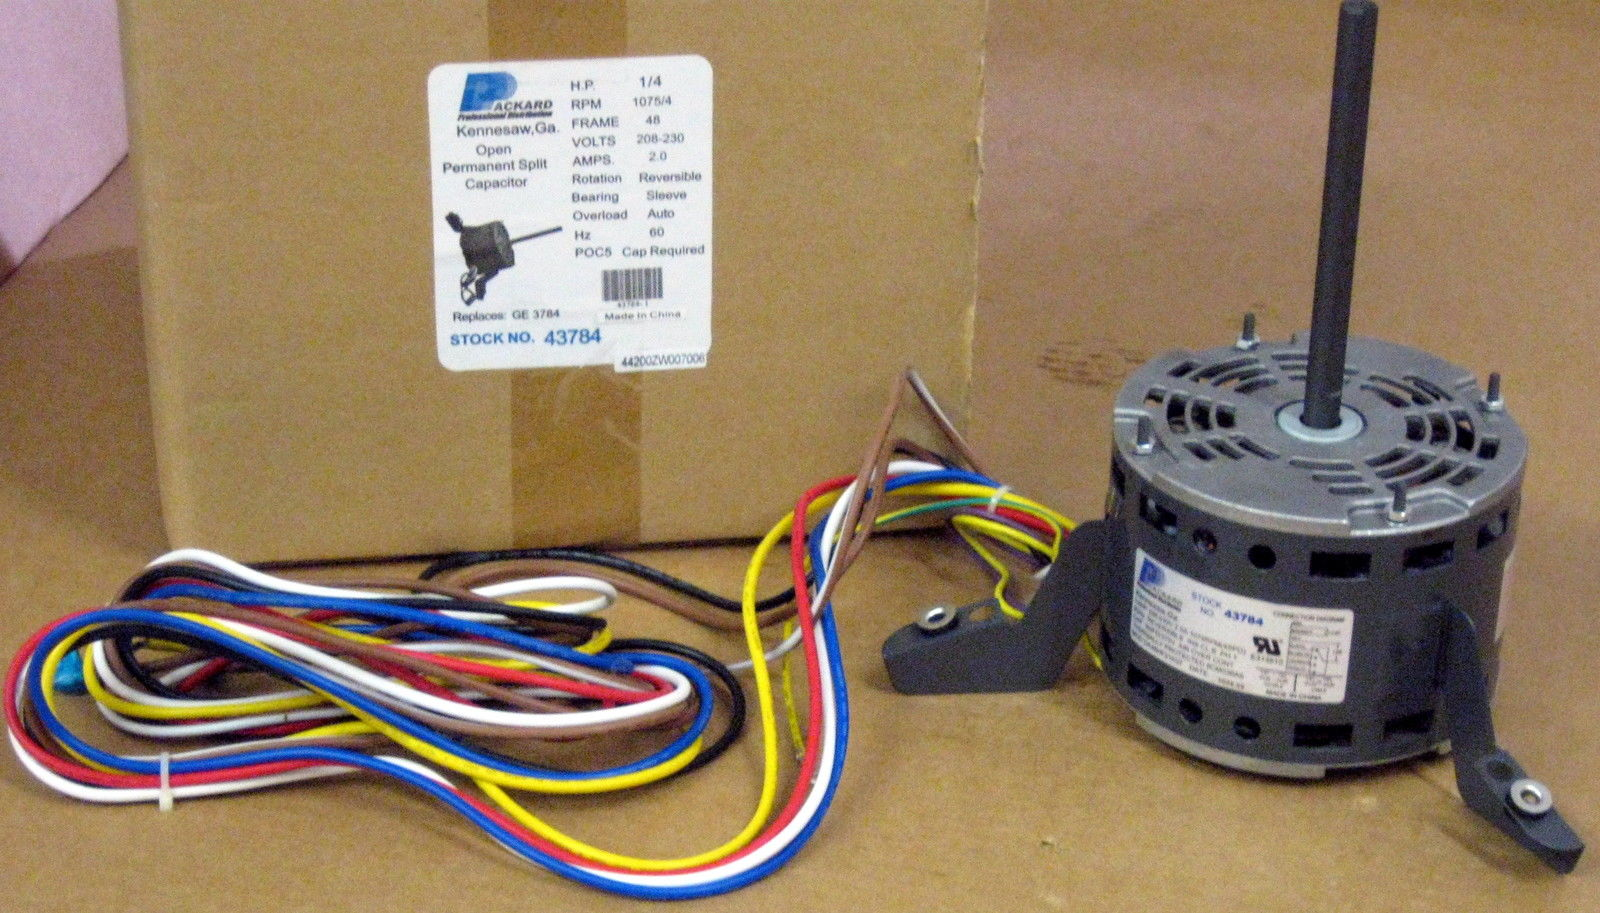 Details about 3784 A/C Blower Motor 1/4 HP 230 V 1075 RPM for Goodman on